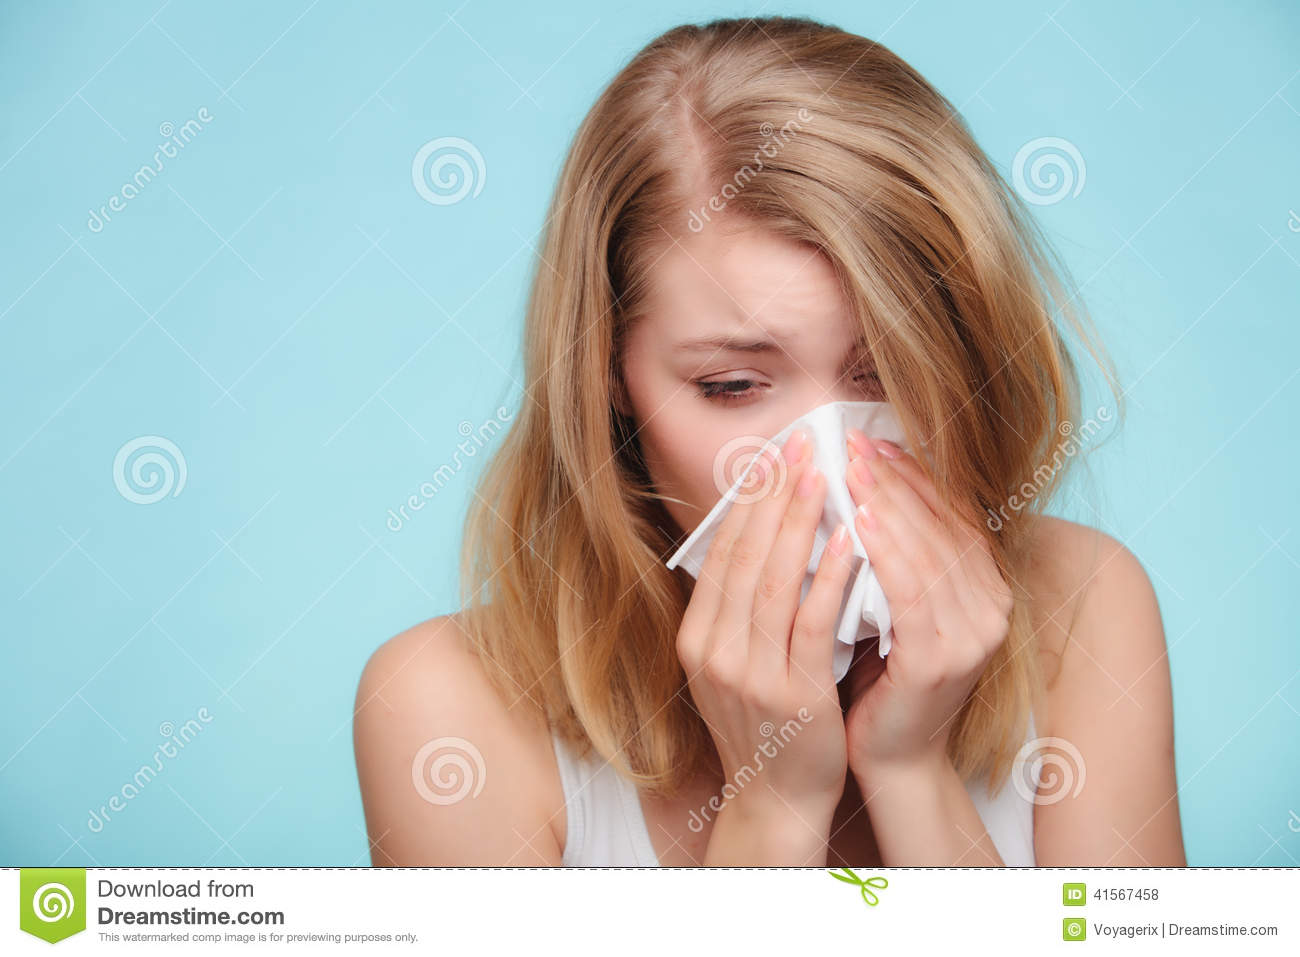 Download Flu Allergy. Sick Girl Sneezing In Tissue. Health Stock Photo - Image of blank, medical: 41567458